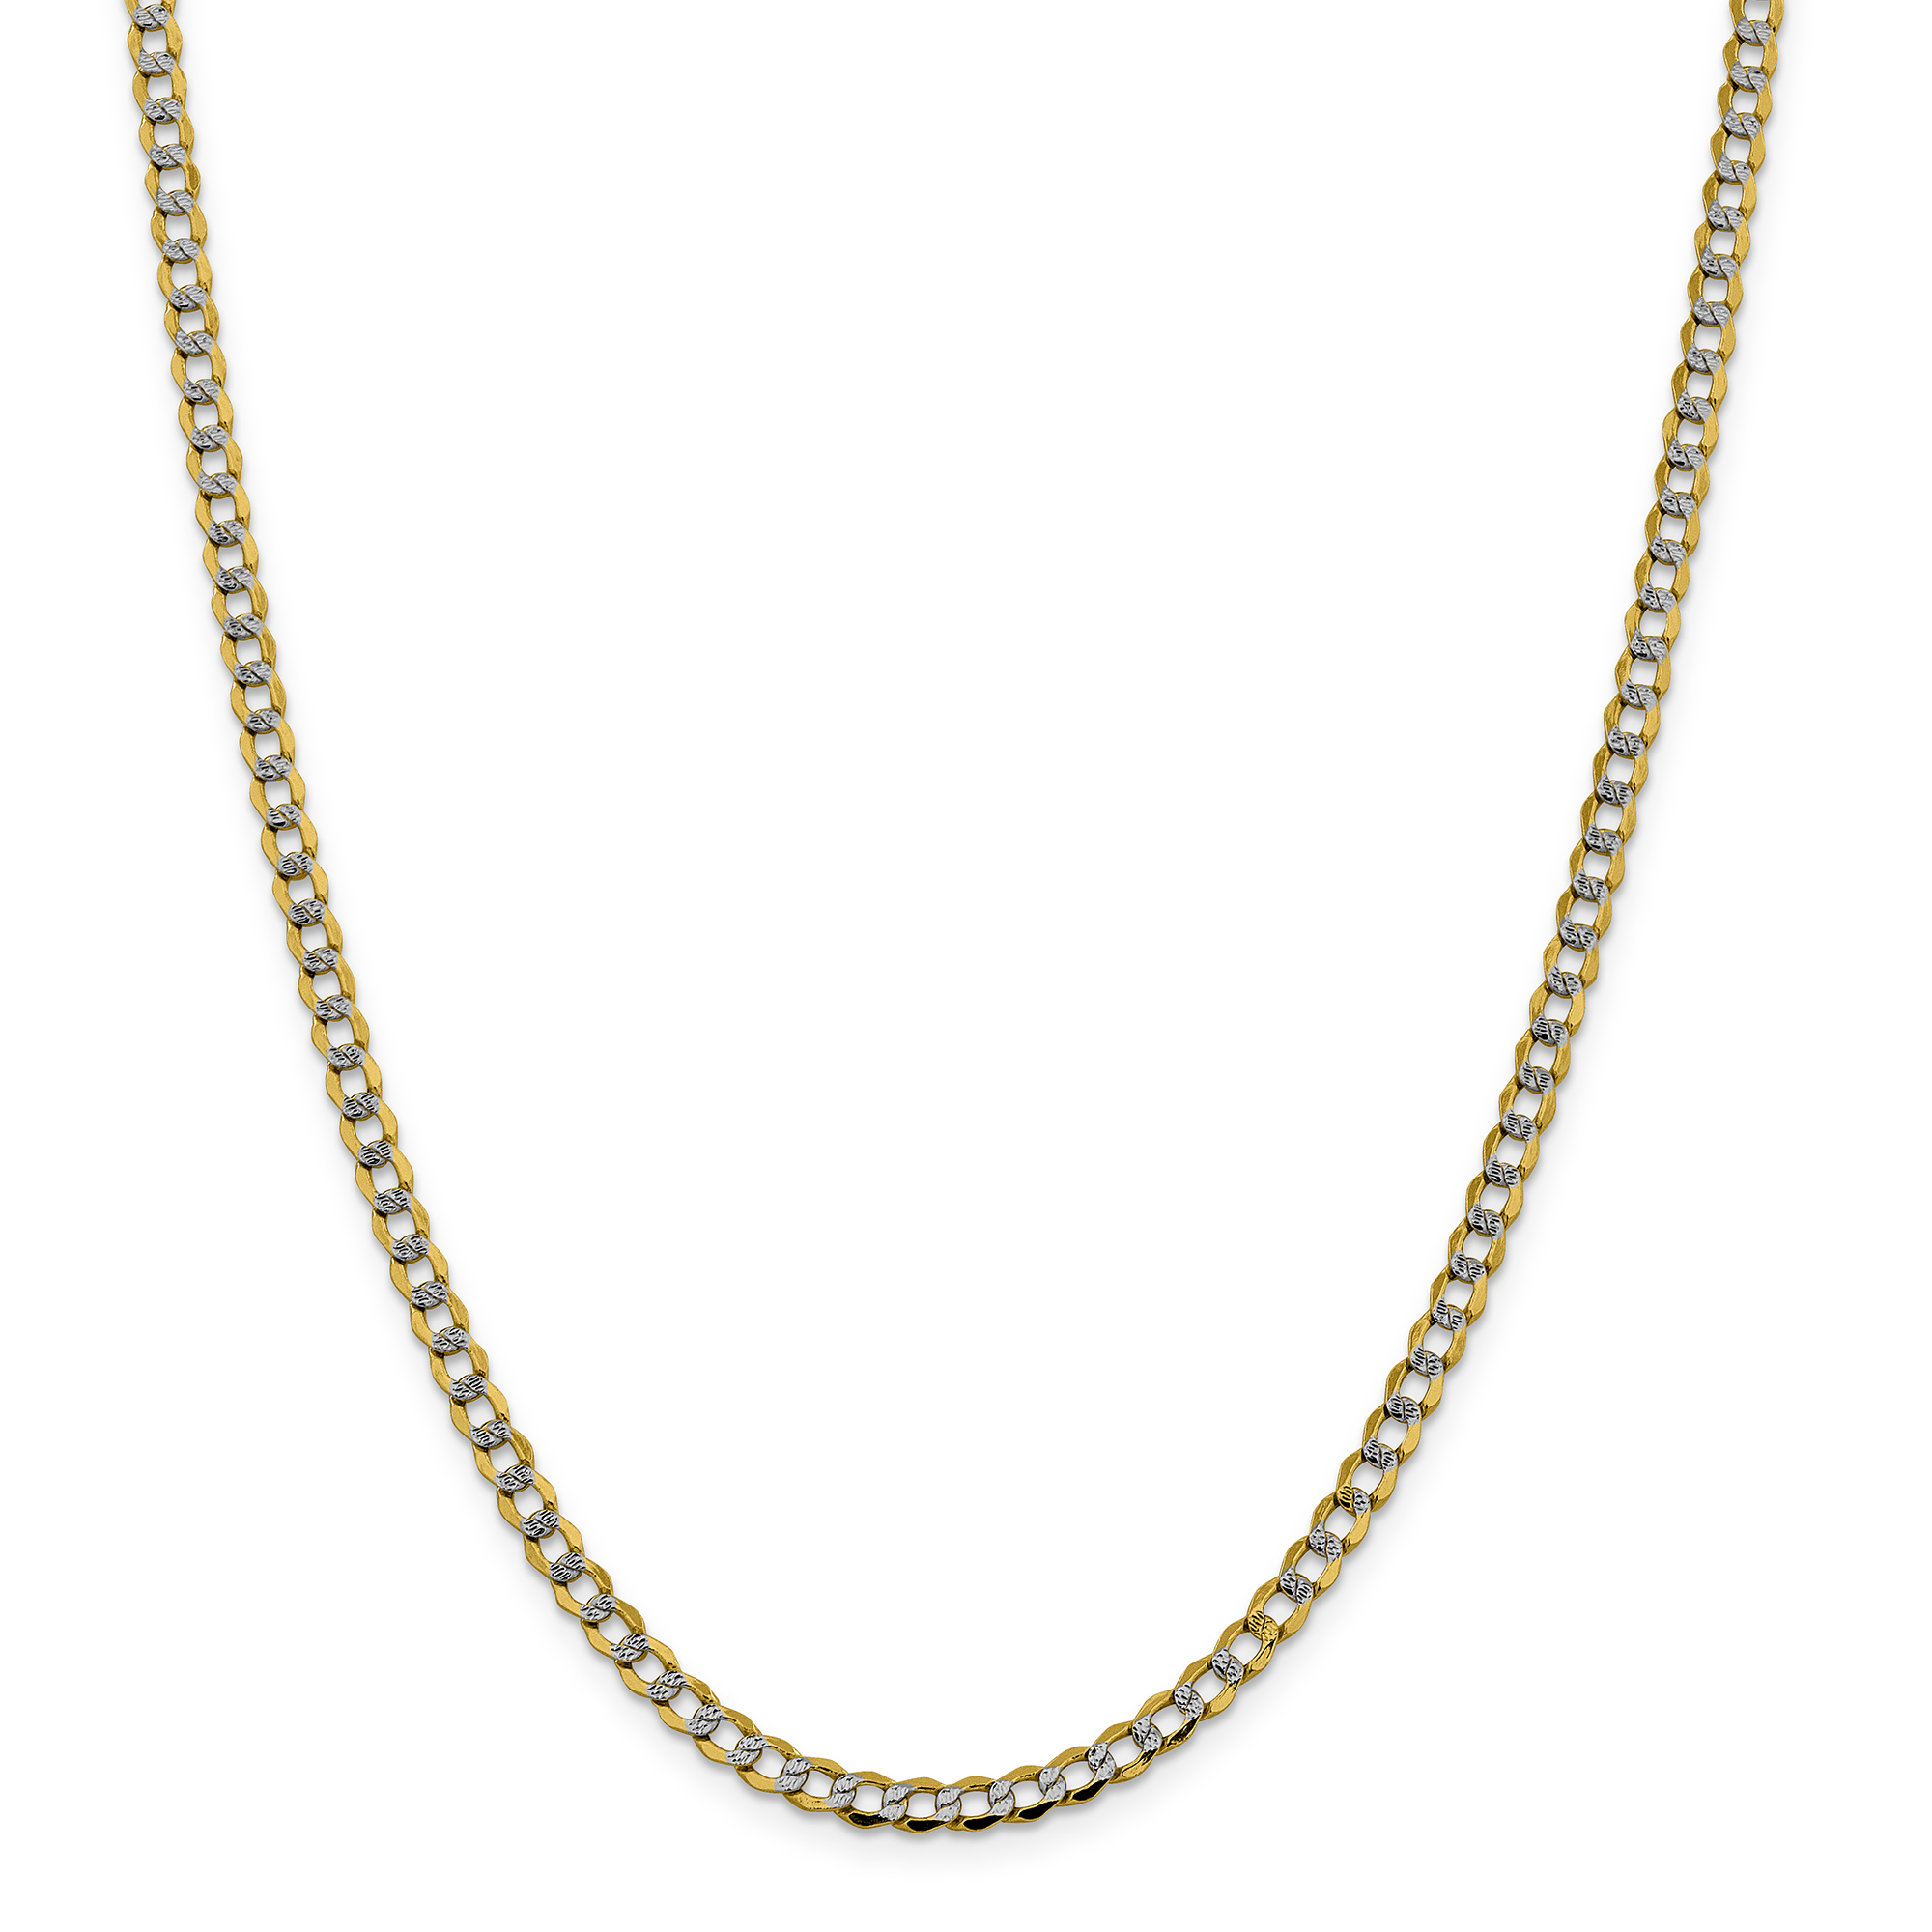 14k Yellow Gold 4.3mm Link Curb Chain Necklace 20 Inch Pendant Charm Pav? Fine Jewelry Gifts For Women For Her - image 5 of 5